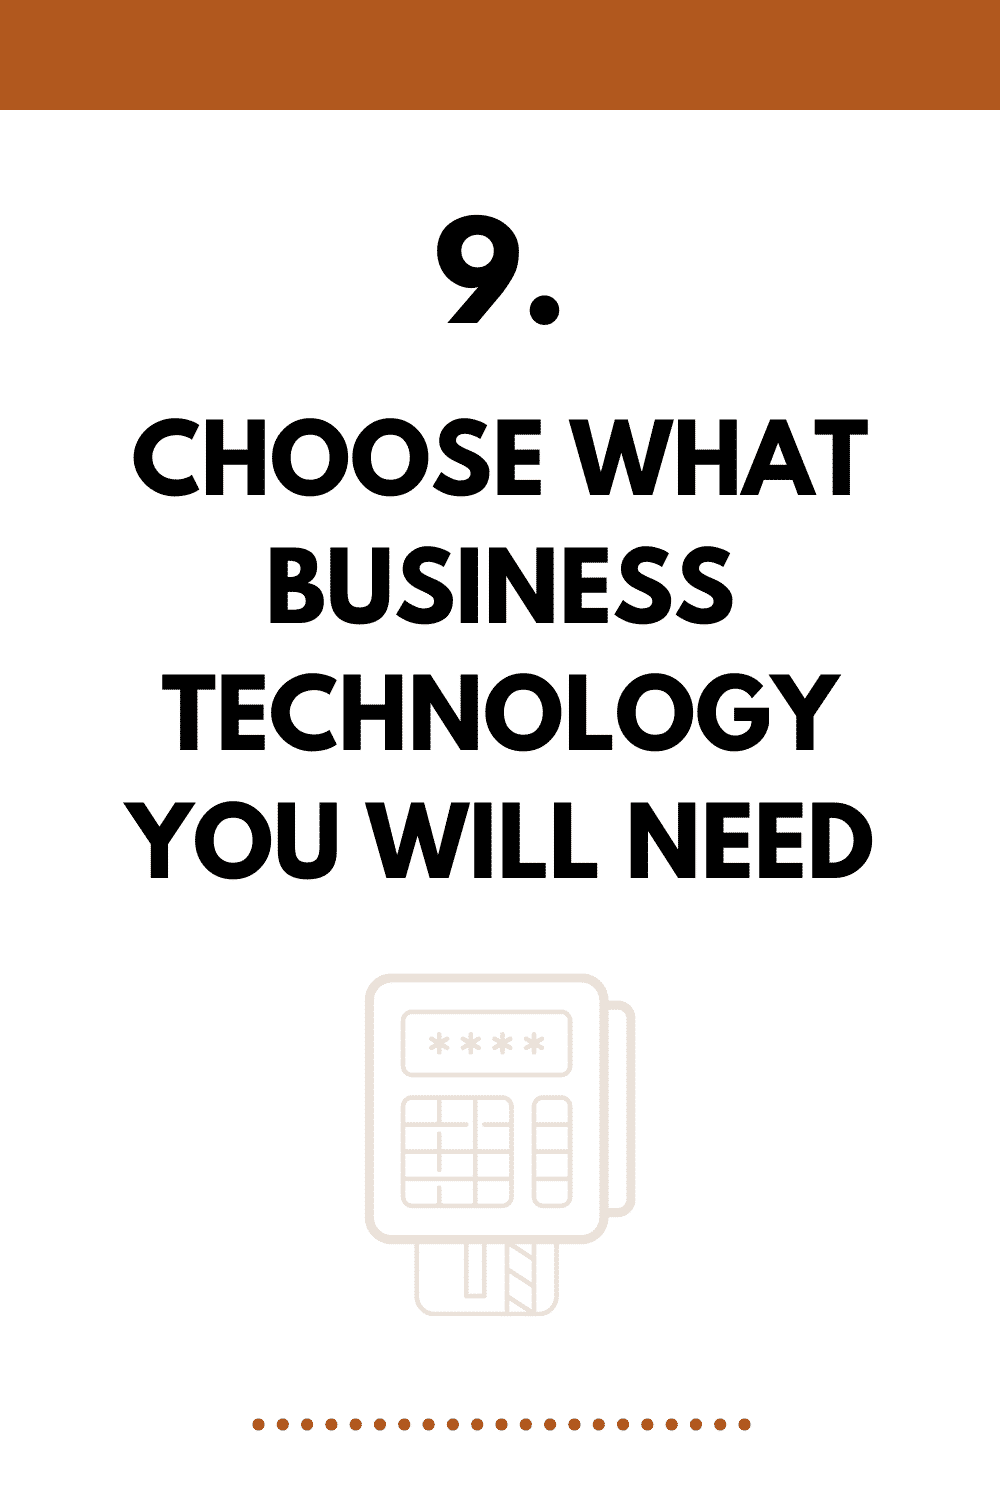 Choose what business technology you will need for your coffee shop